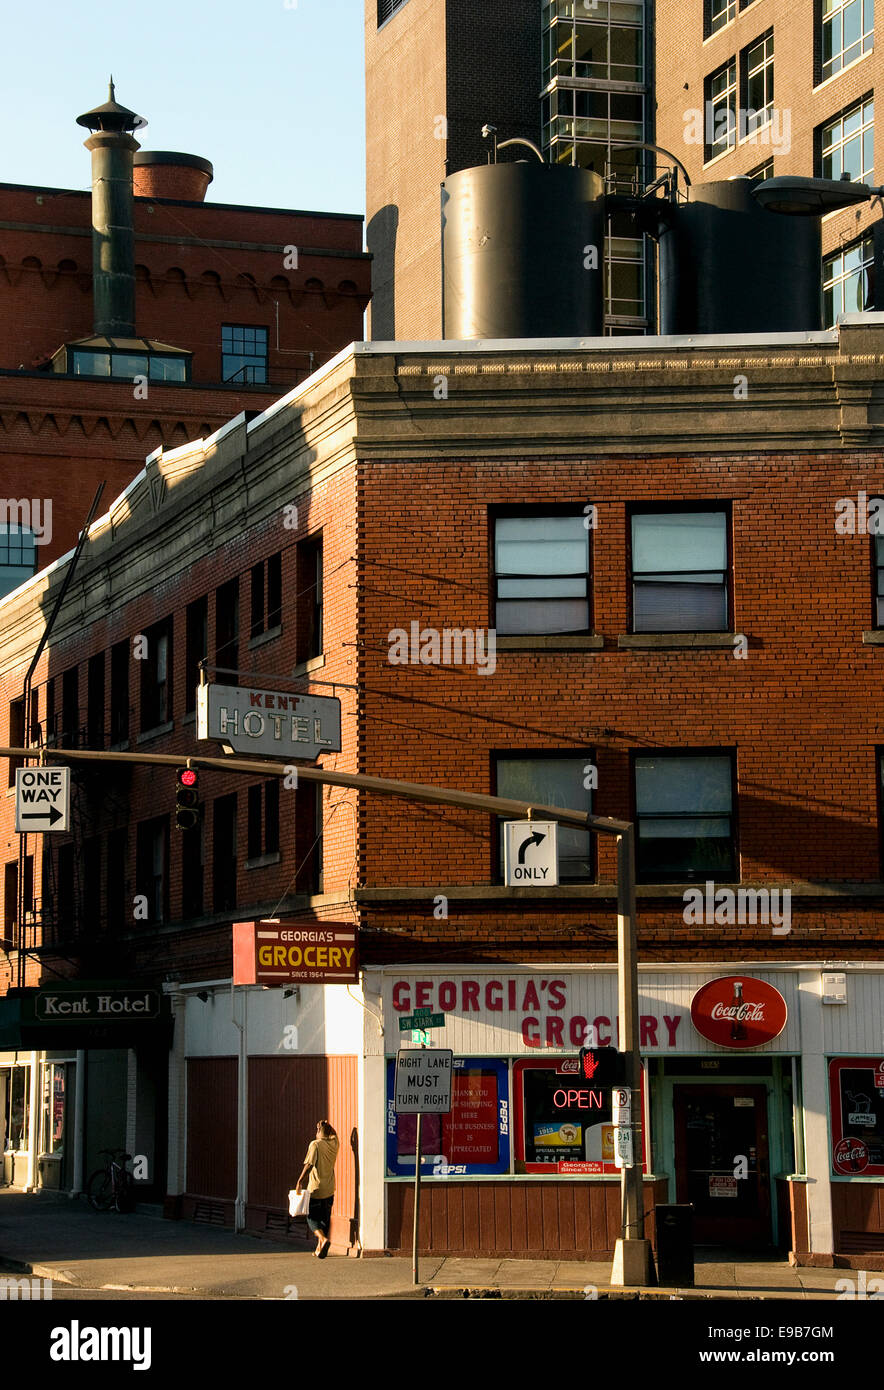 The intersection of 12th and Stark in downtown Portland, Oregon - Stock Image